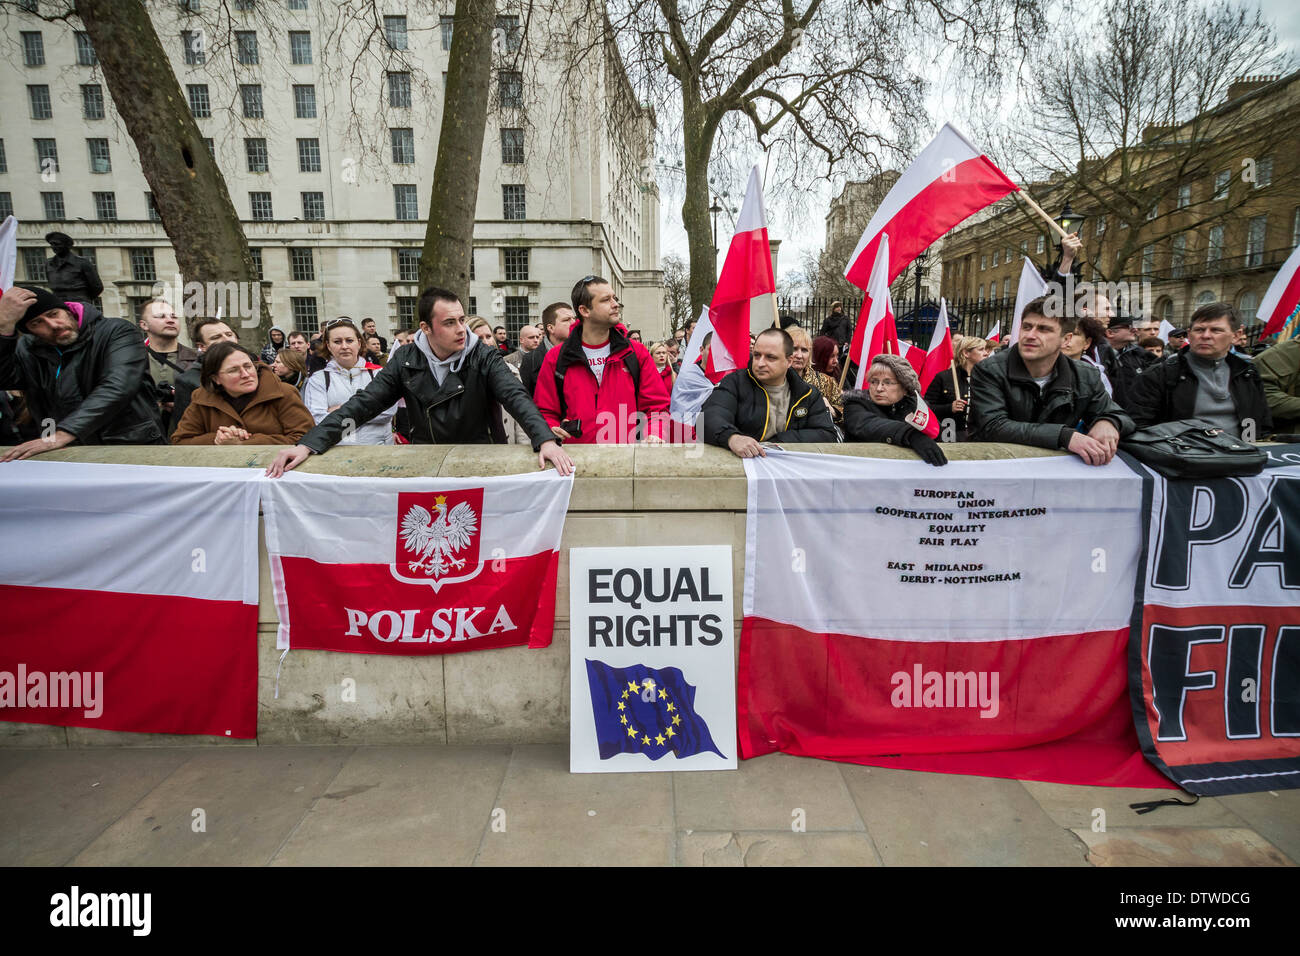 Demonstration against the discrimination of Polish people in London and UK - Stock Image